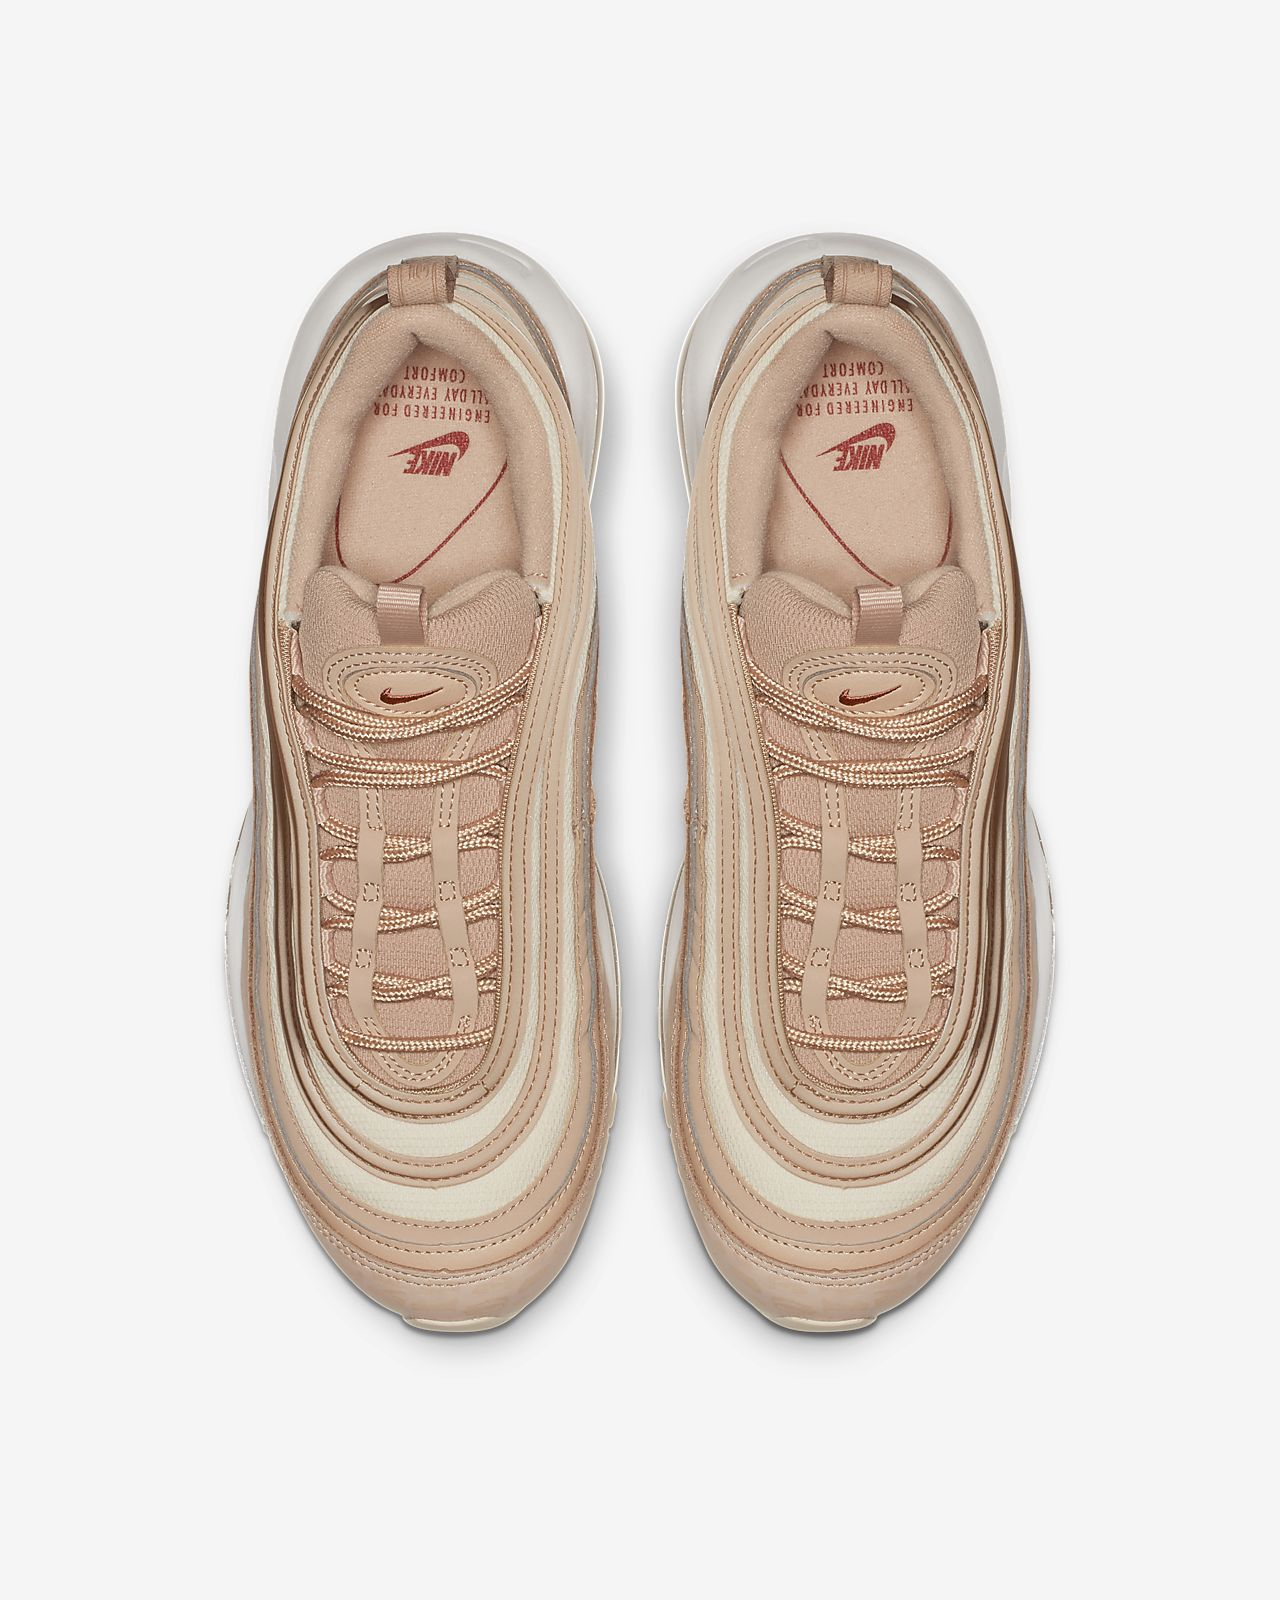 newest 03f46 4700f ... Chaussure Nike Air Max 97 LX pour Femme